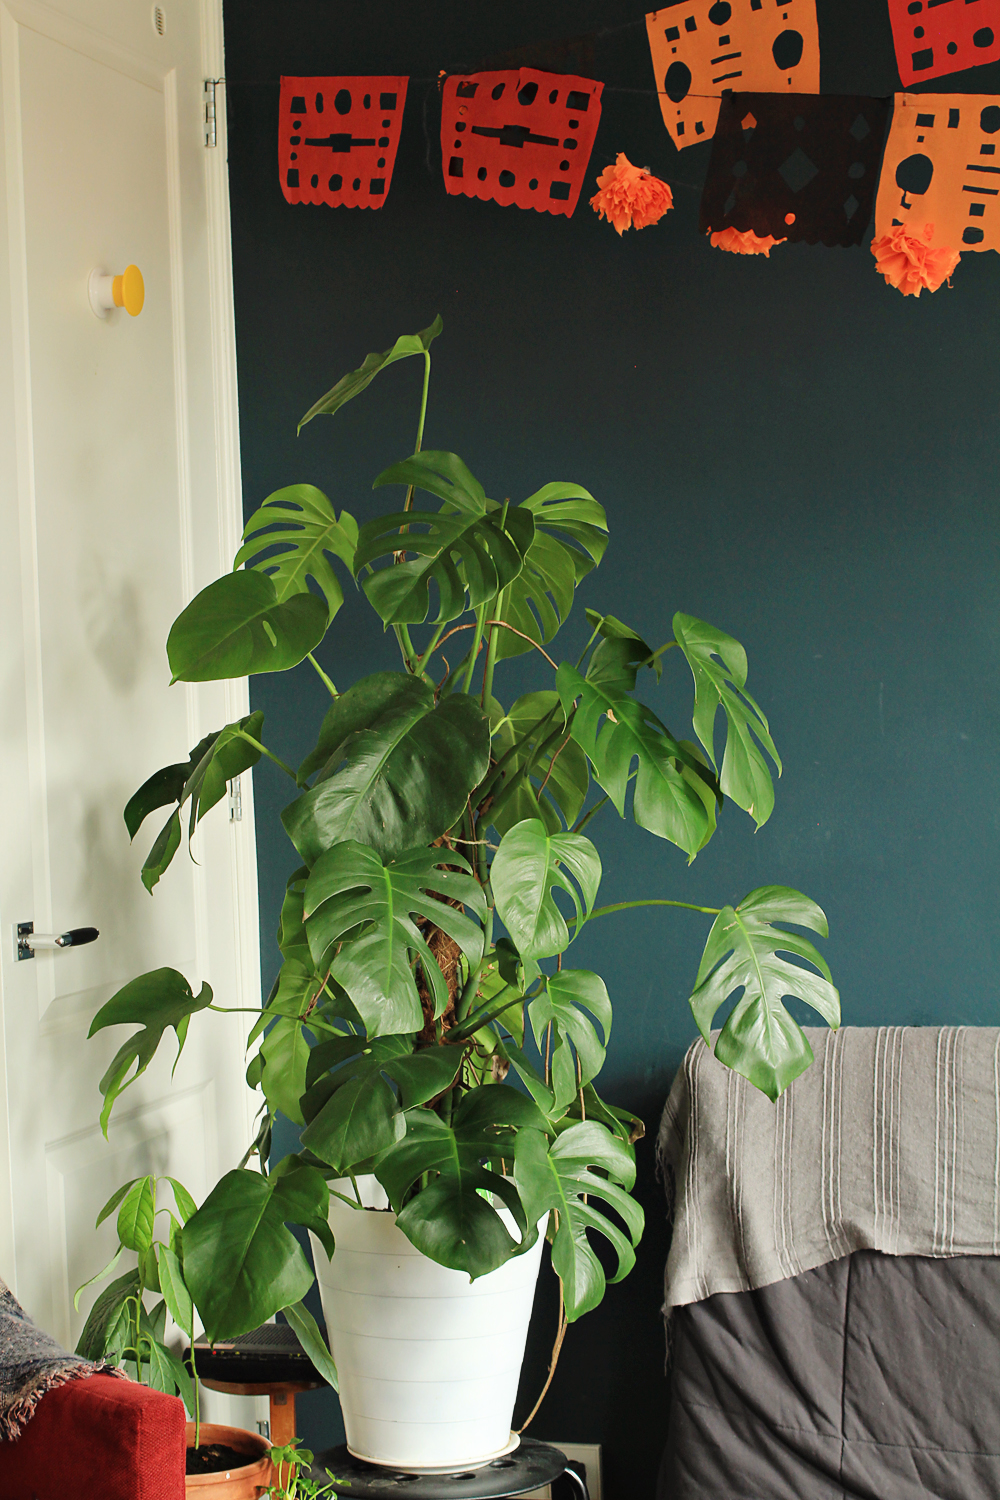 monstera deliciosa tips for caring growing and propagating it in whirl of inspiration